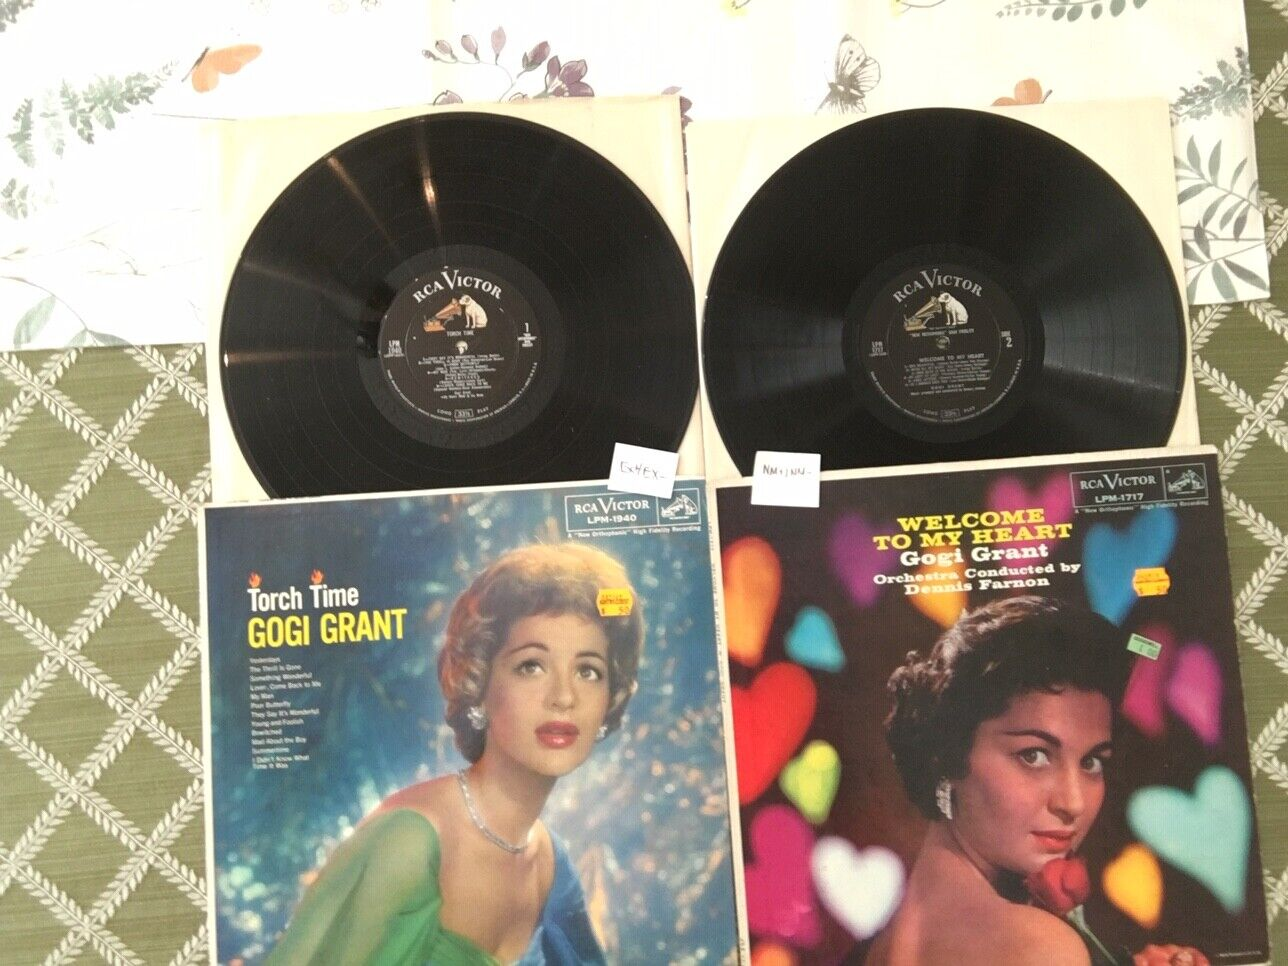 Gogi Grant Vinyl Record LP Torch Time Welcome To My Heart 60s Pop Jazz - $7.99